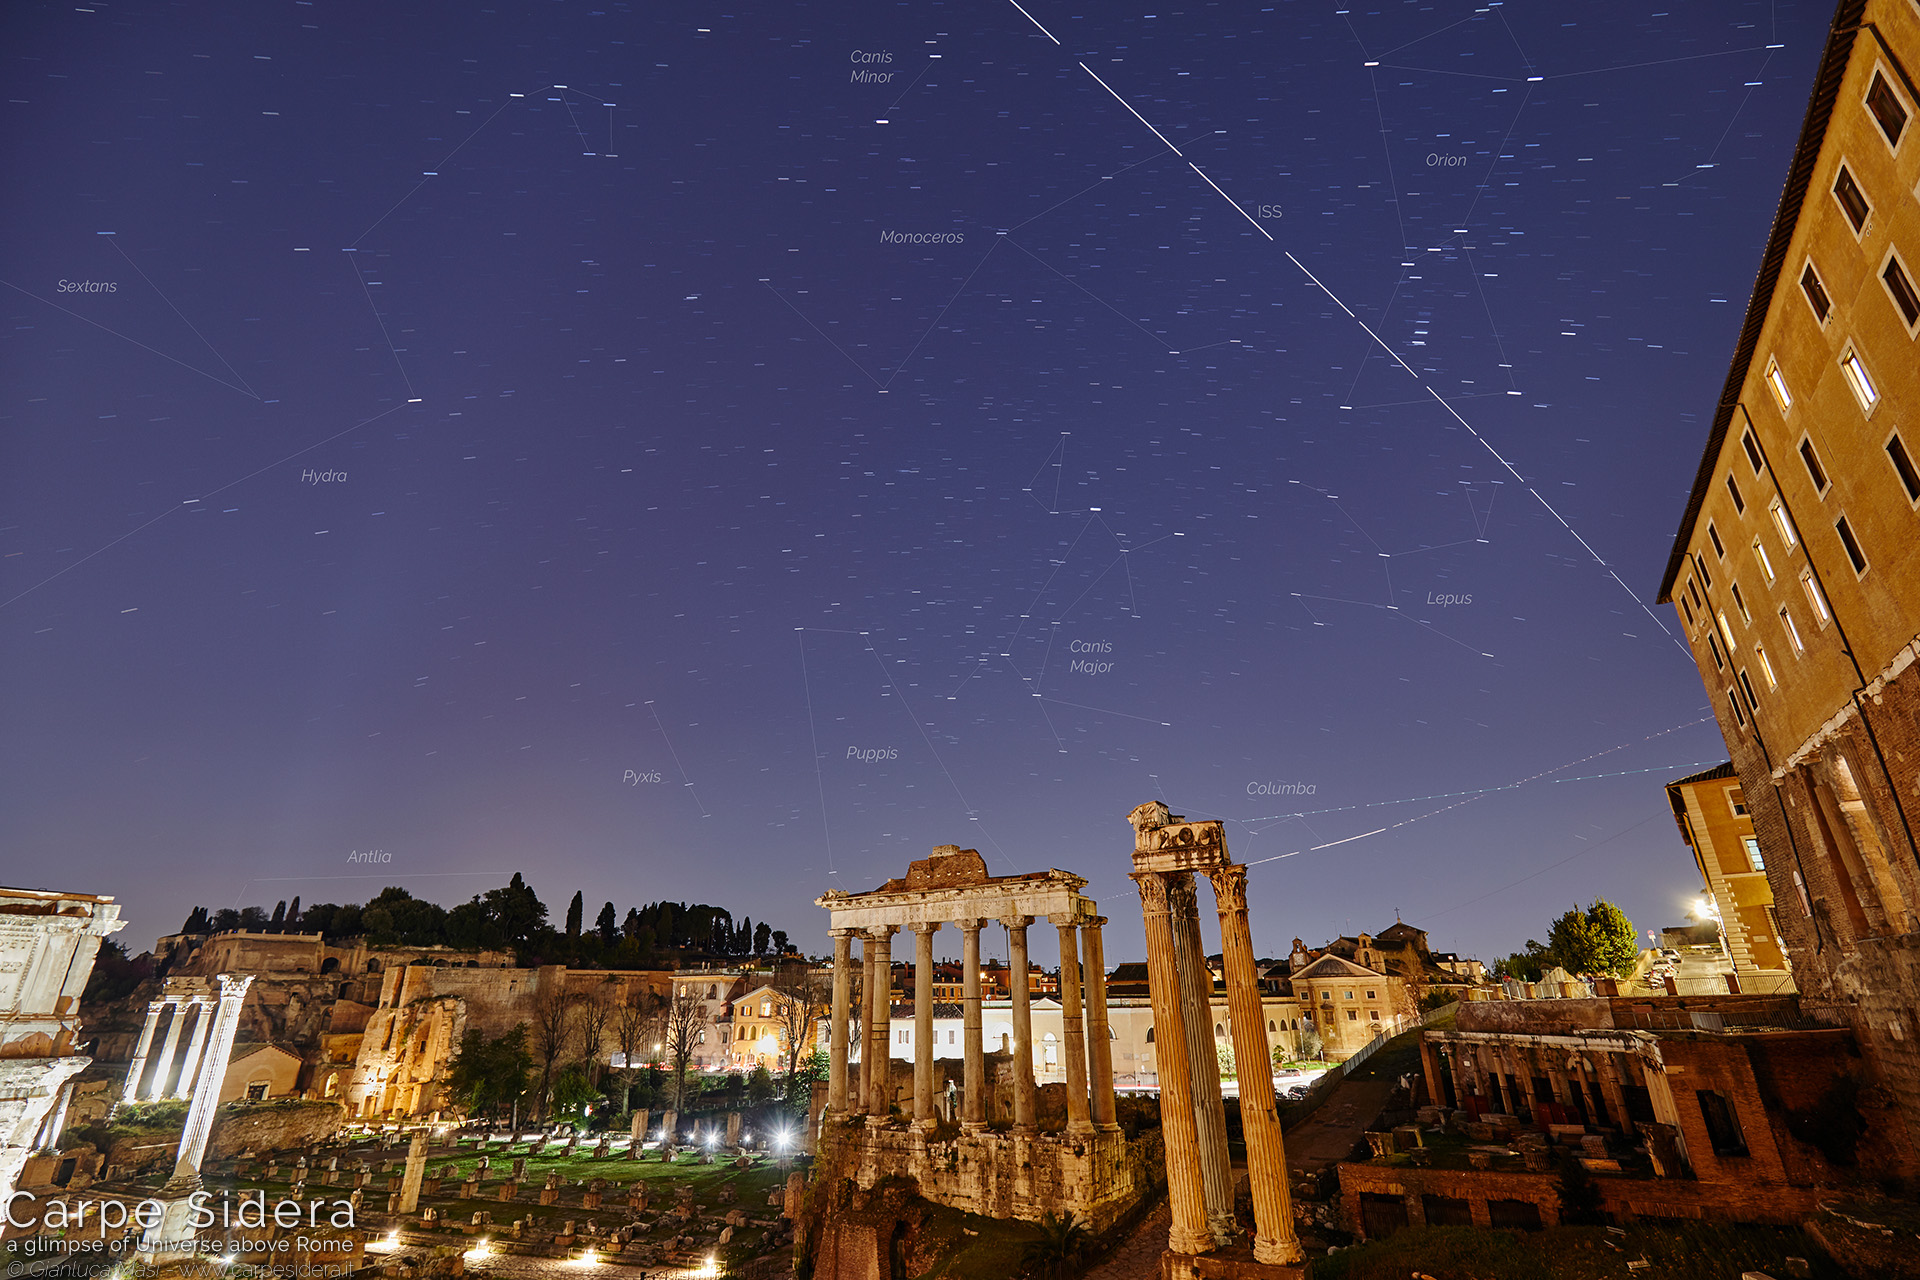 22. The Roman Forum and the International Space Station (ISS).